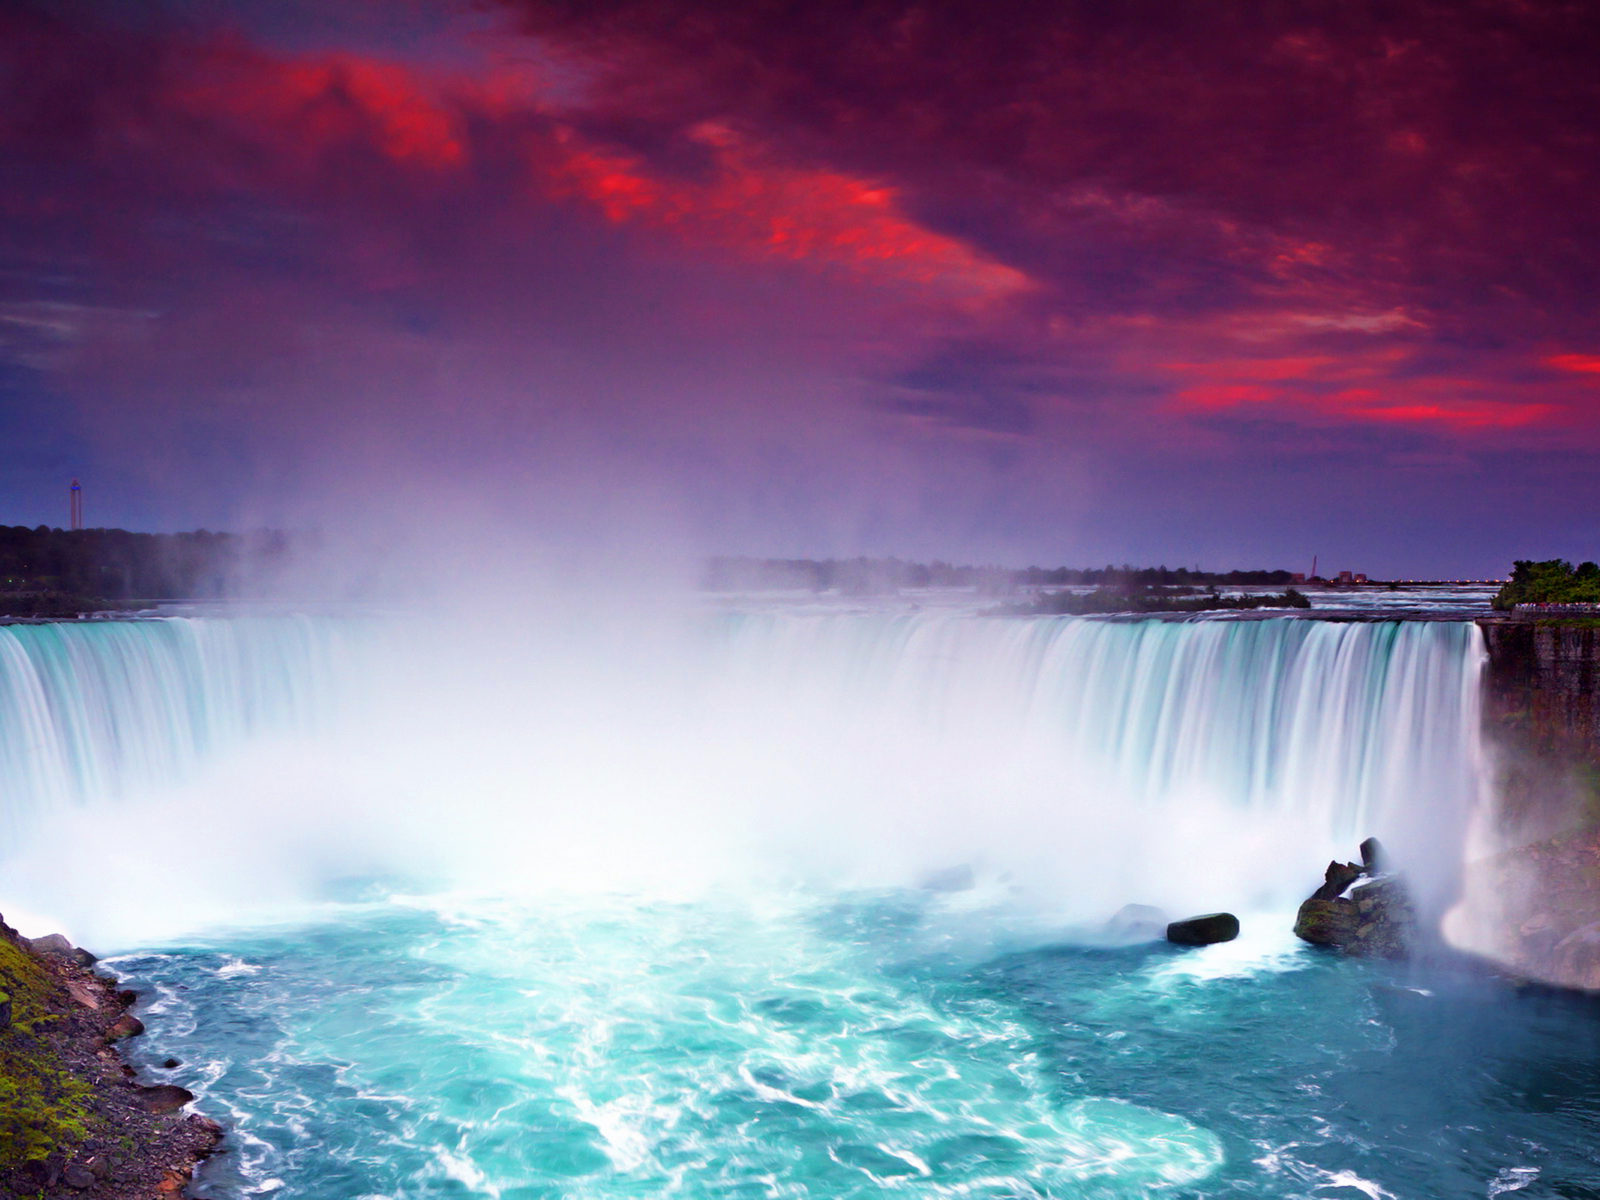 Fall Trees Desktop Wallpaper Niagara Falls At Night Lights Hd Wallpaper For Desktop